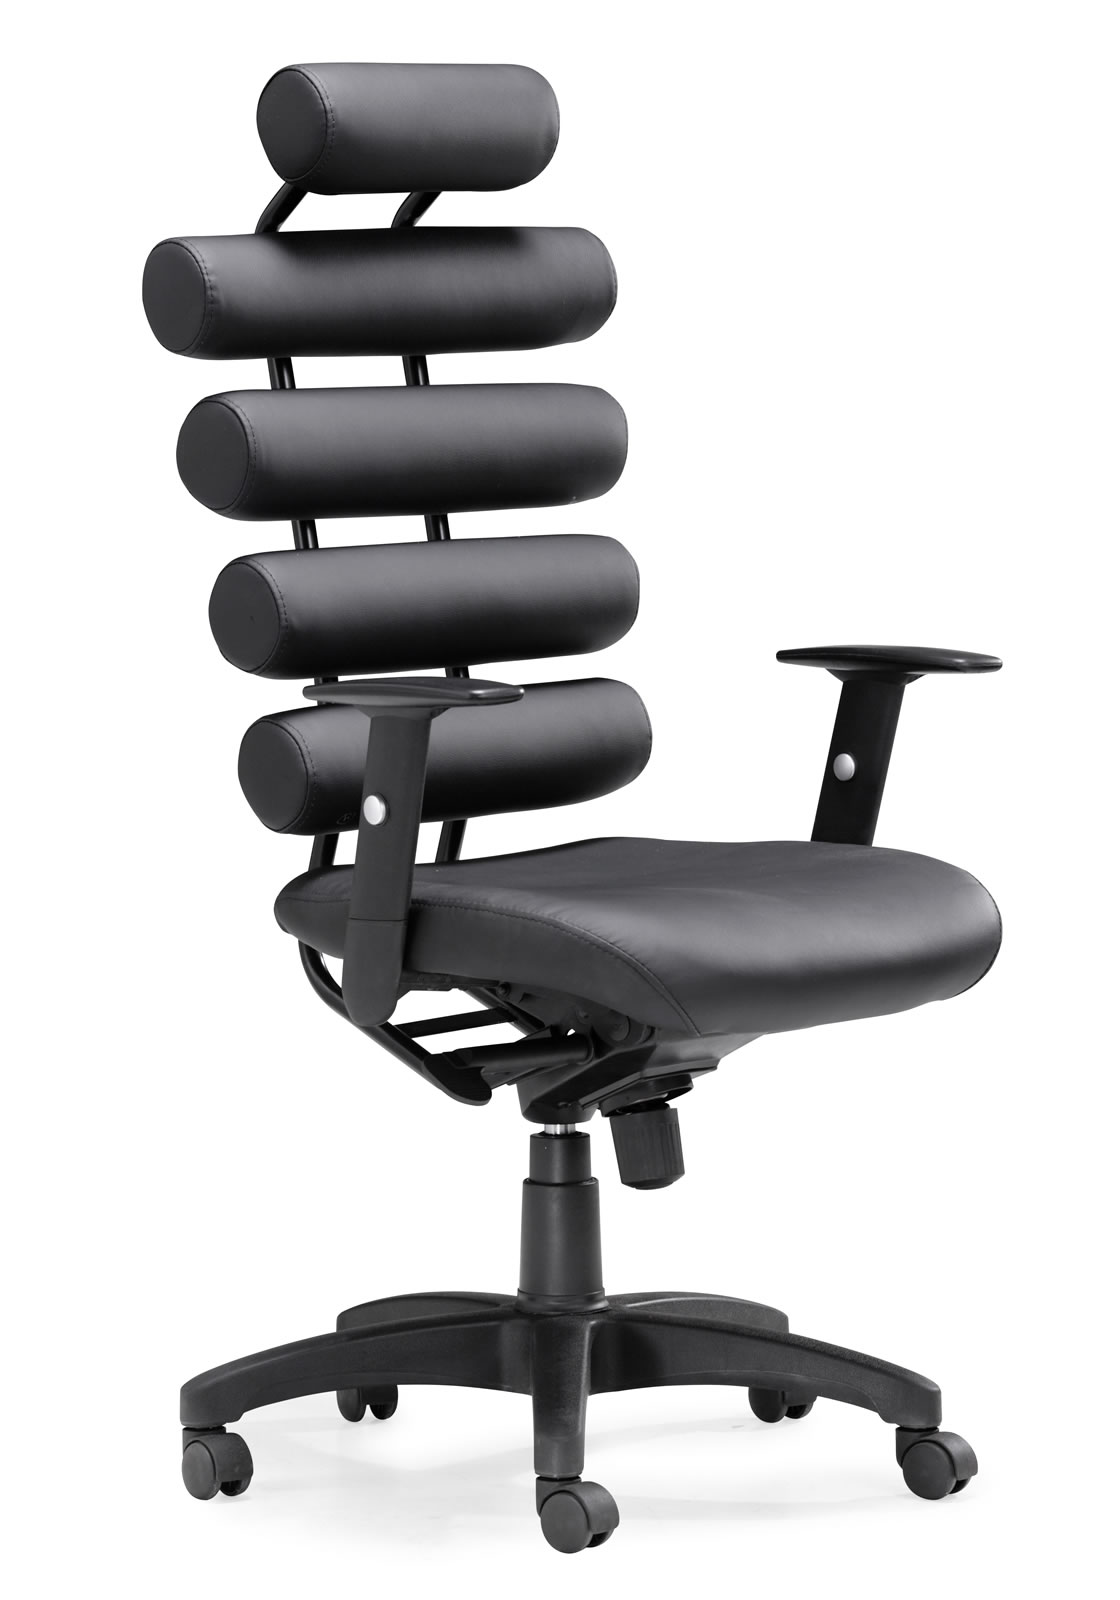 Magnificent Unico Office Chair 1120 x 1600 · 90 kB · jpeg